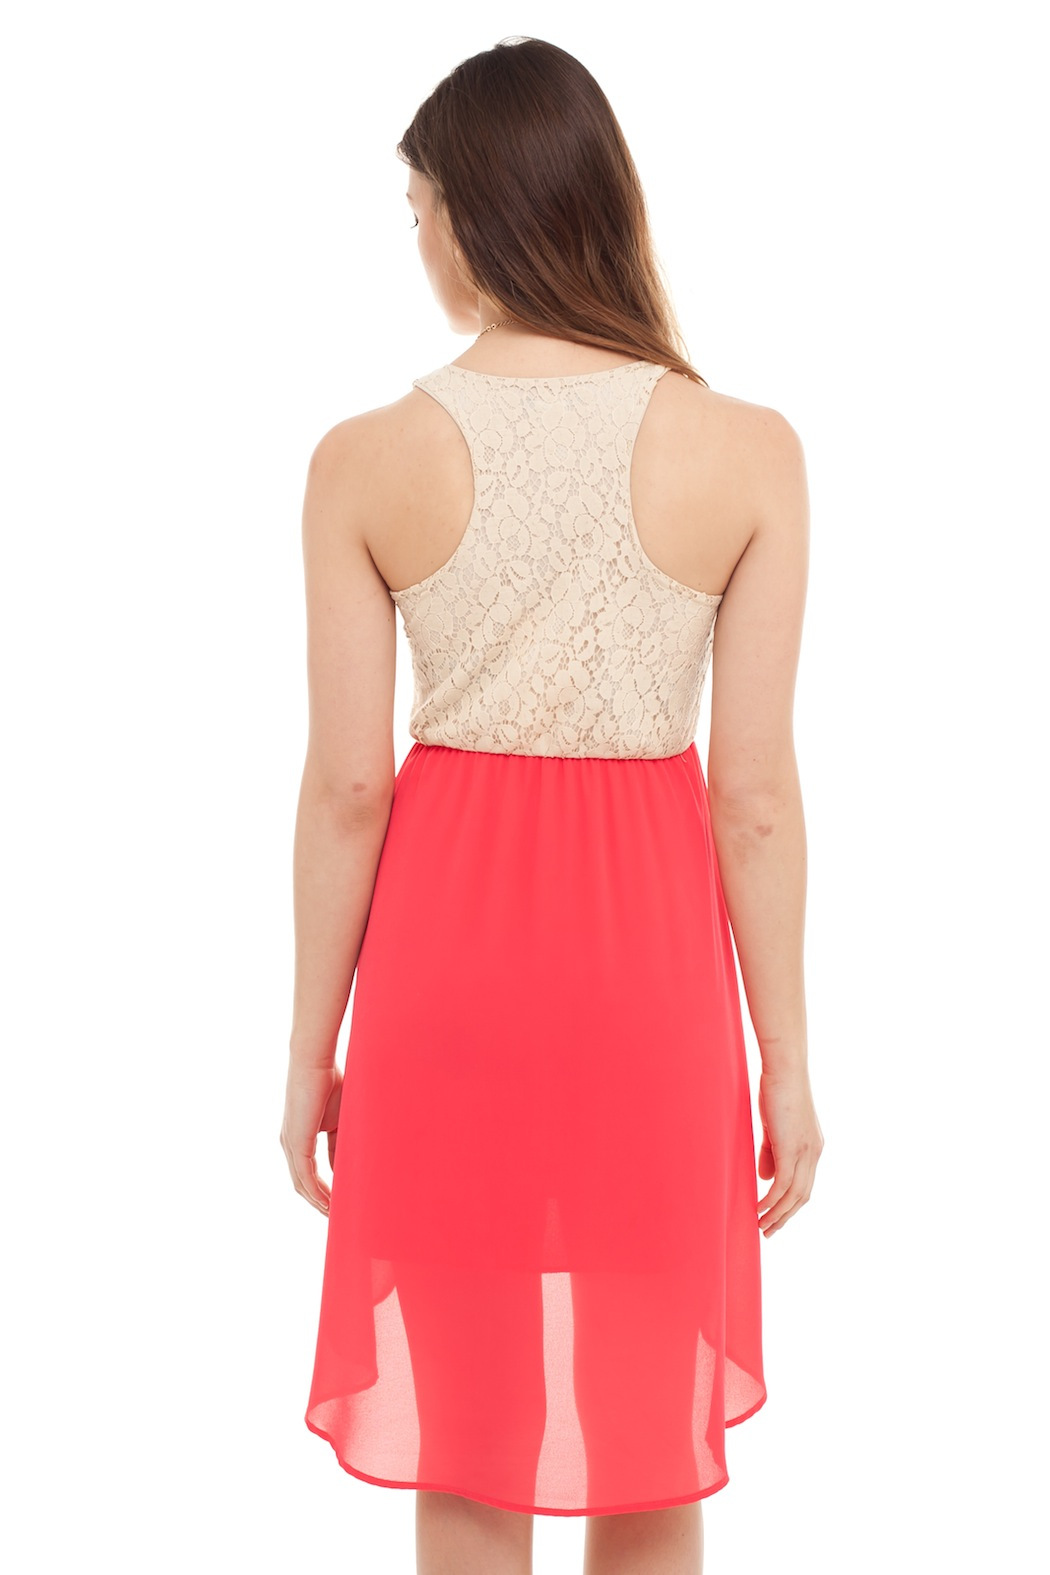 Cantata Lined Lace Dress - Back Cropped Image